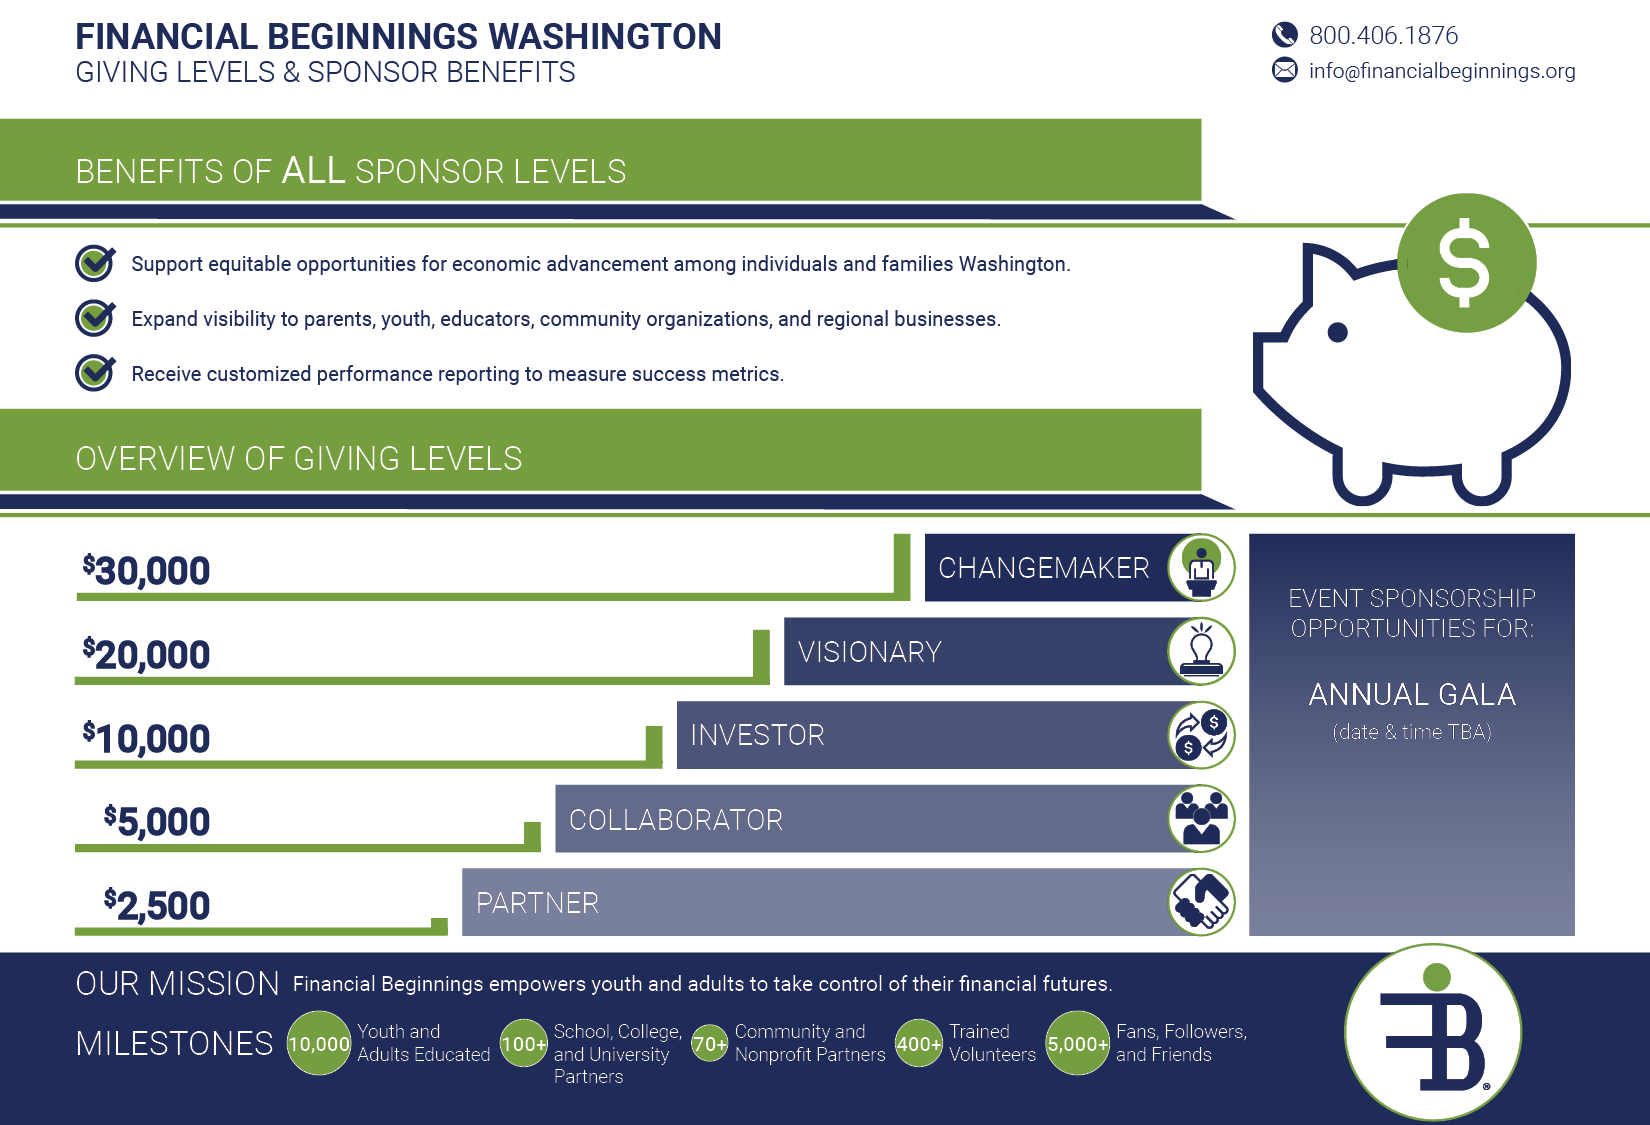 Financial Beginnings Washington Sponsorship Benefits